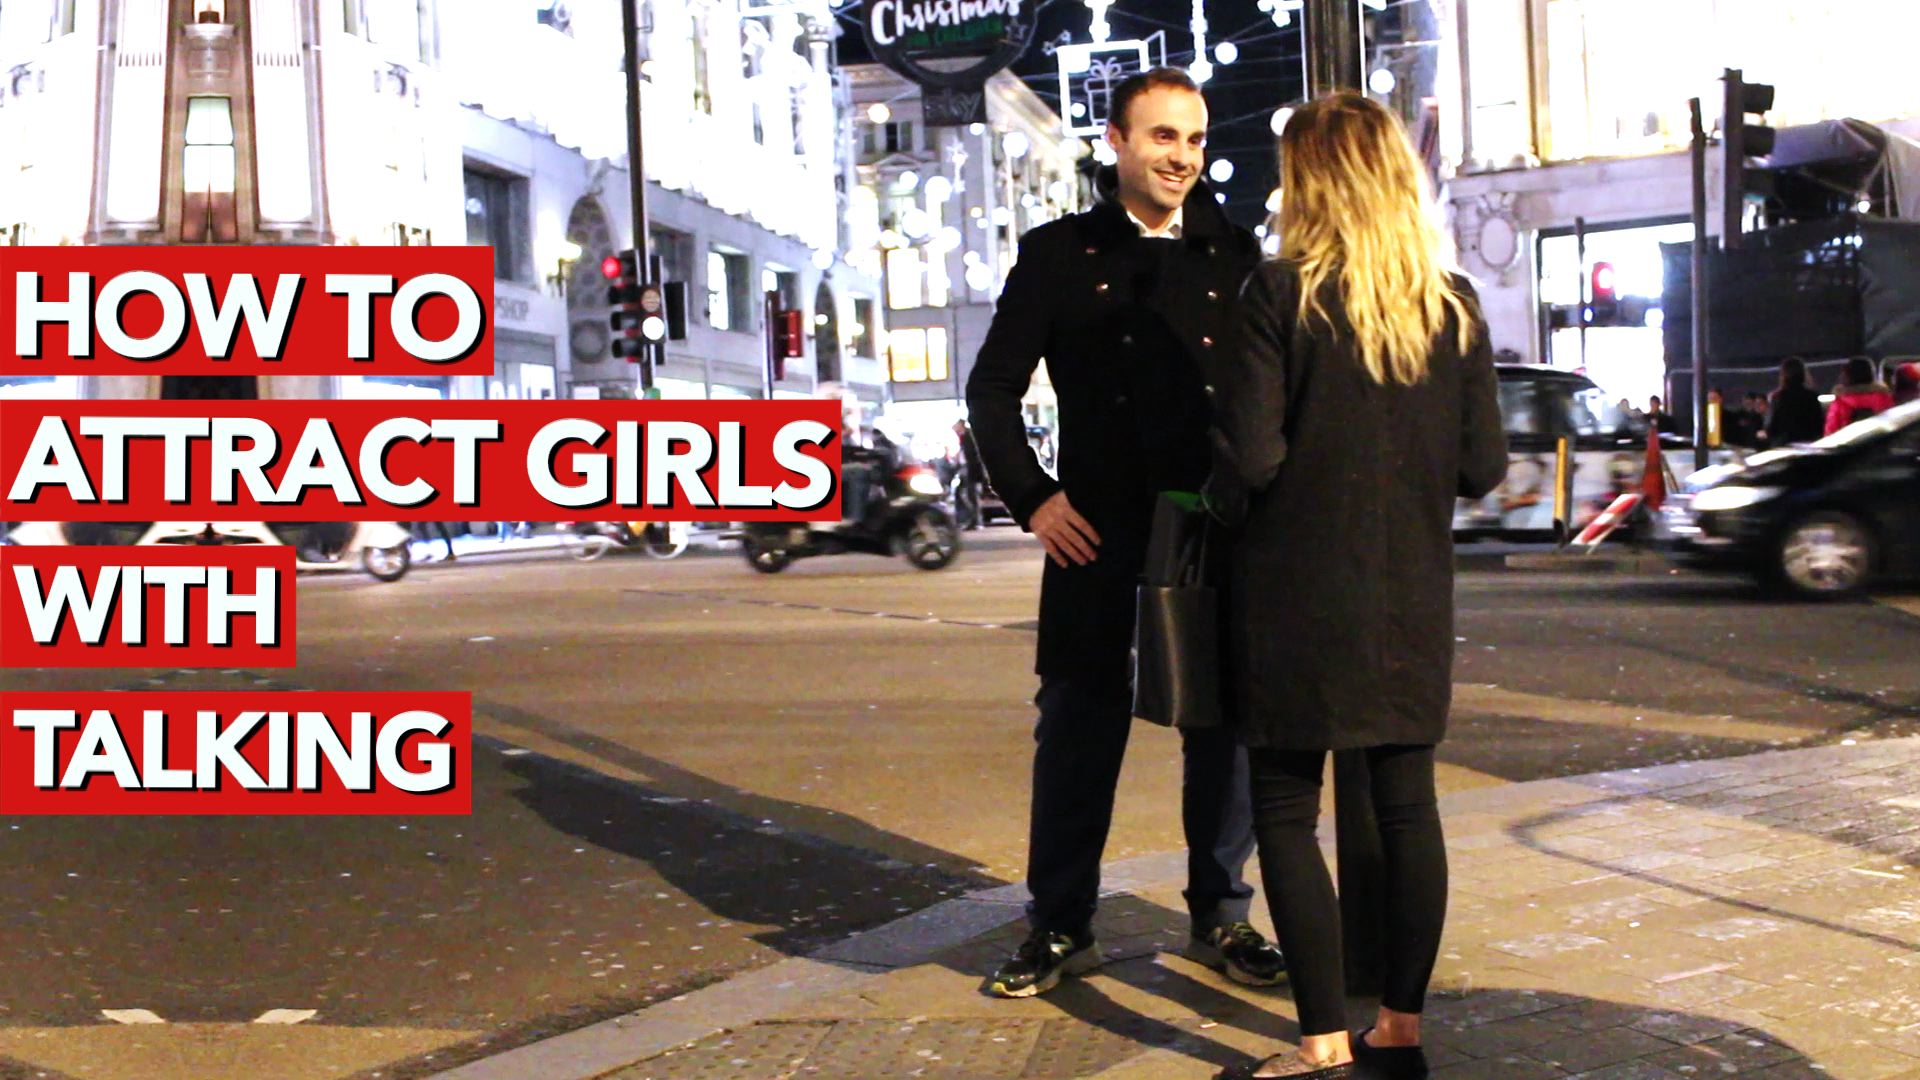 1-How to attract girls with talking